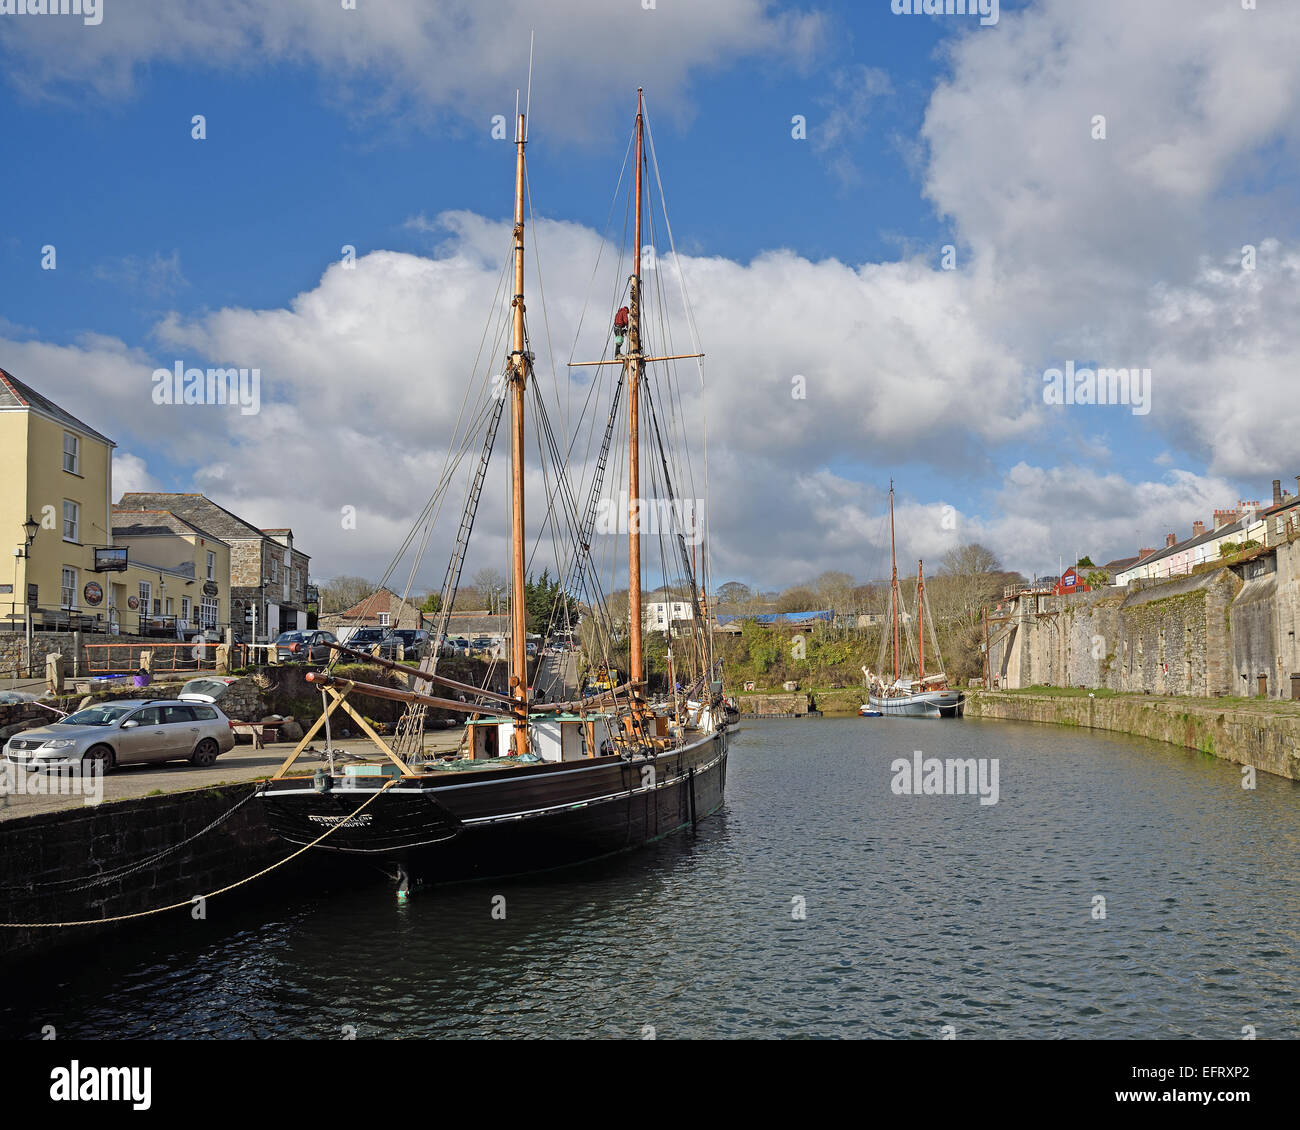 Bessie Ellen, a wooden coasting ketch at Charlestown, Cornwall, UK.  The ketch is used for sailing based holidays. - Stock Image